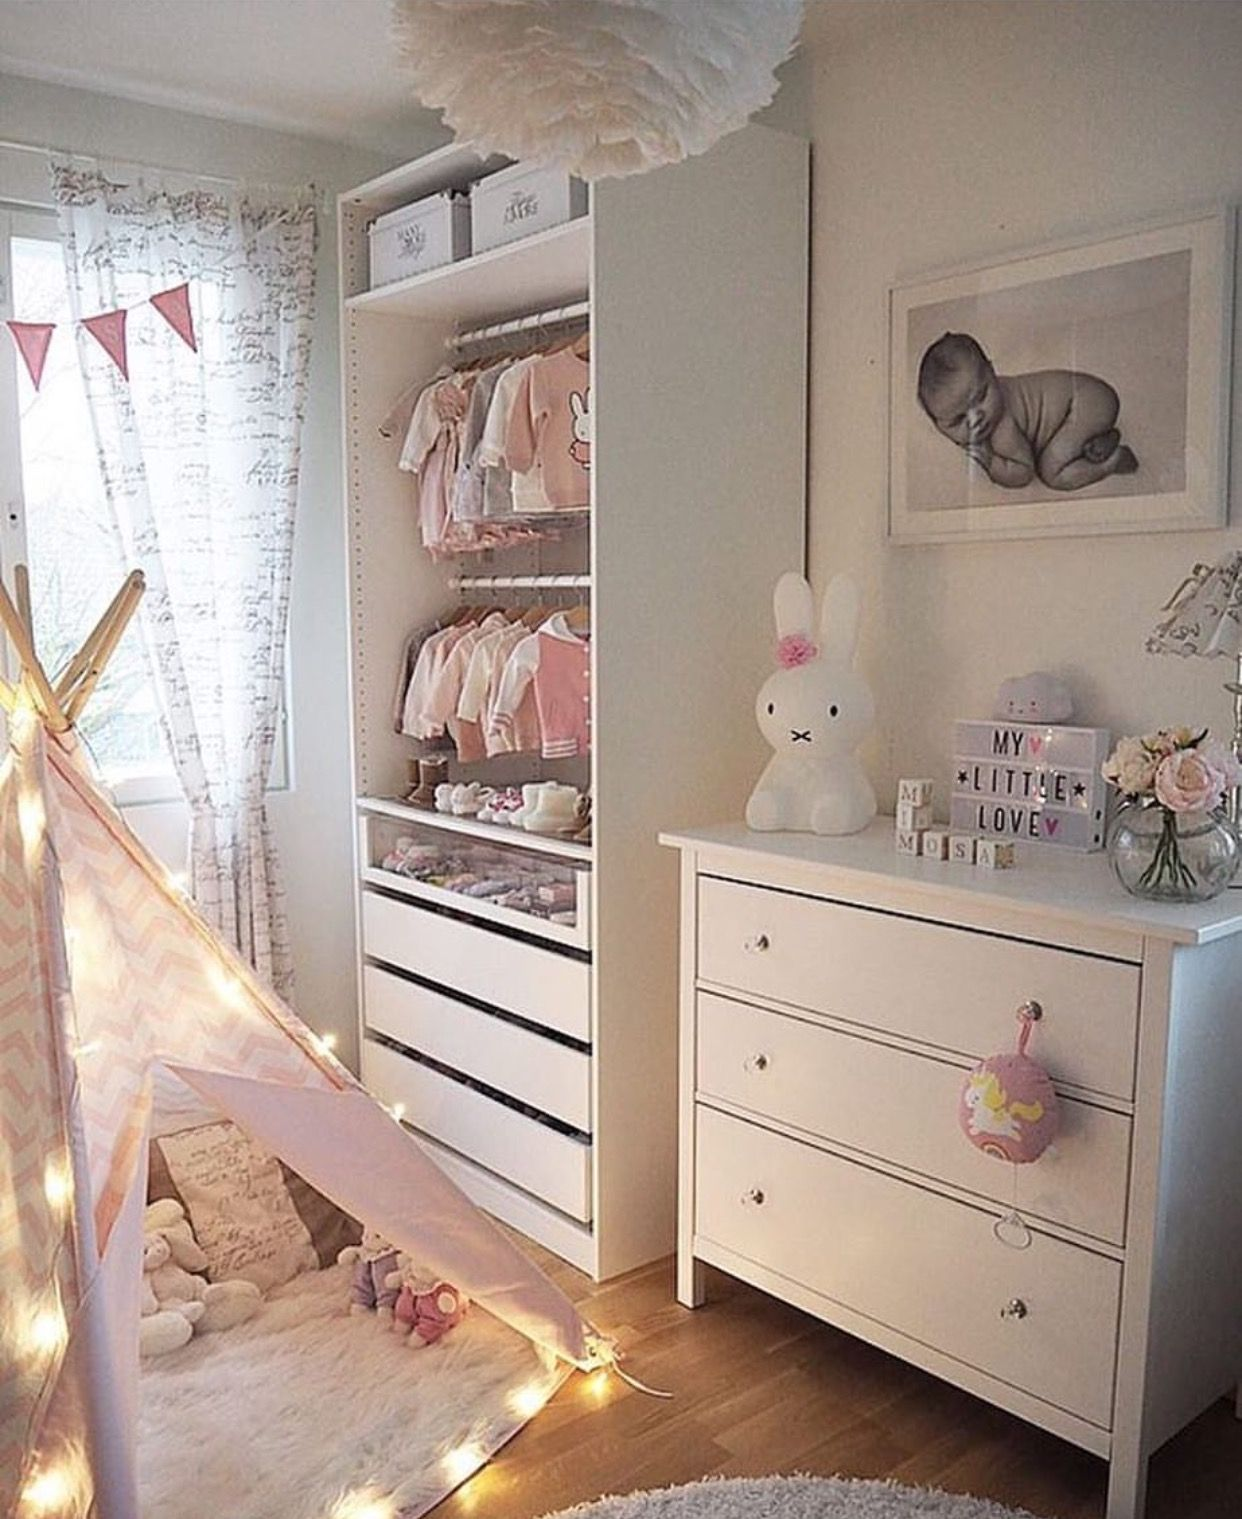 Pinterest claudiagabg g i r l r o o m babyzimmer for Ideas decoracion habitaciones bebes